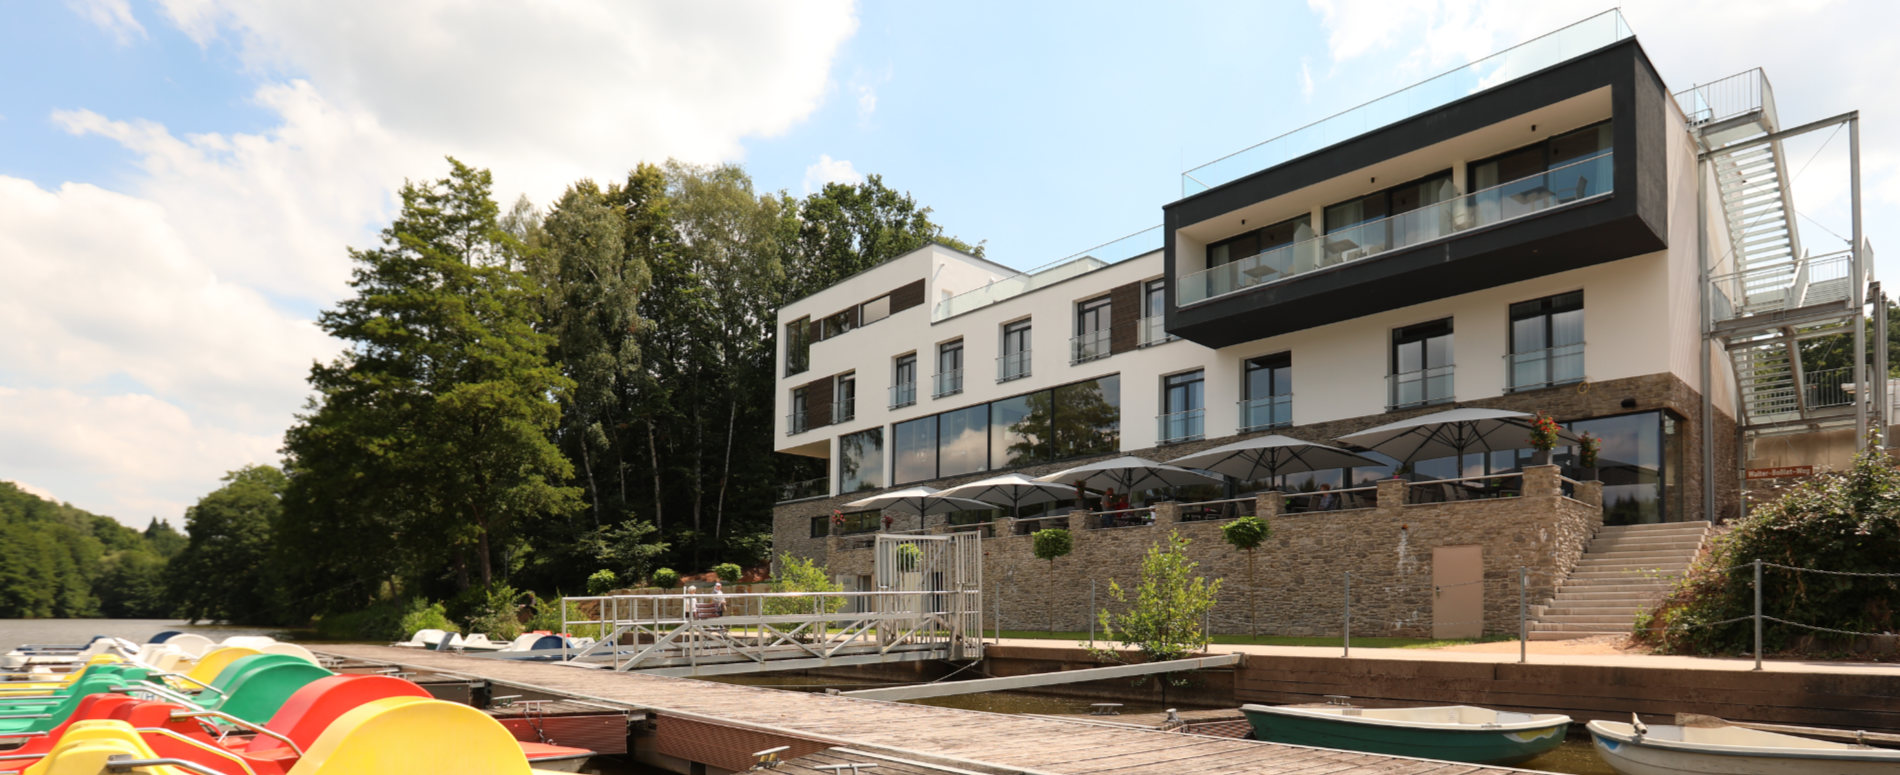 Gastfreund Informationen Rund Ums Peters Hotel Peters Wellness Spa Hotel Saarland